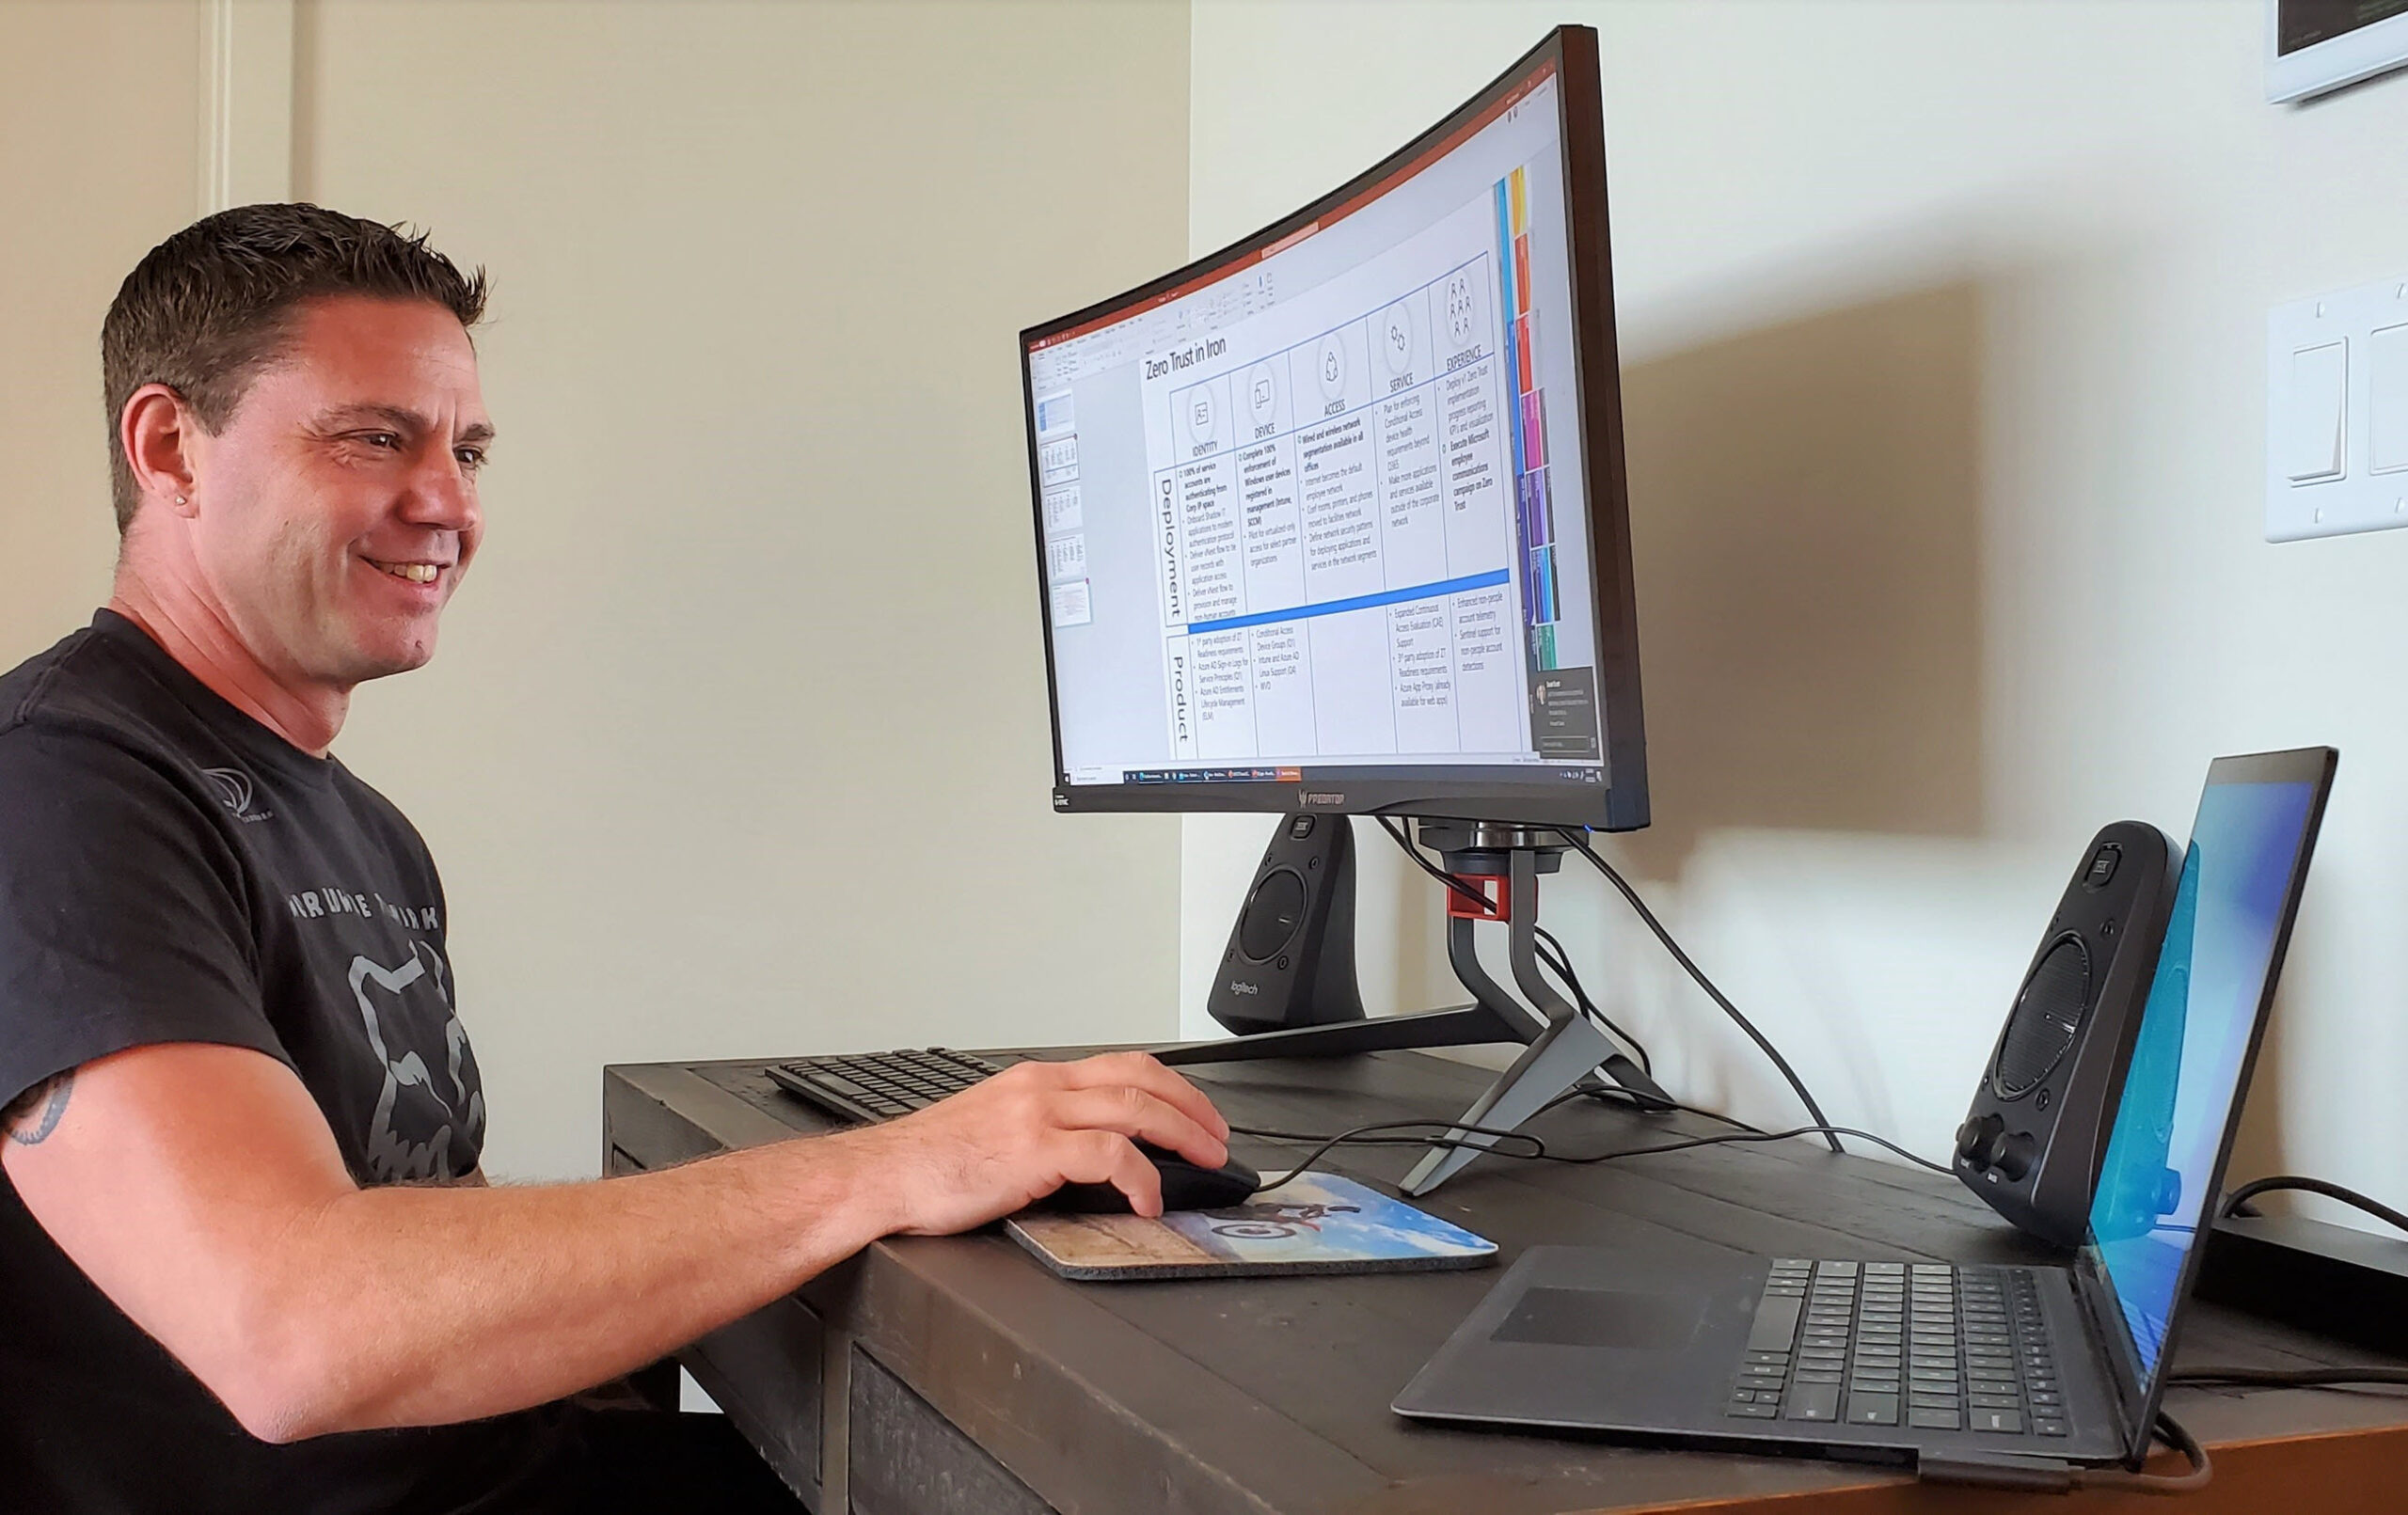 Skorupa sits at his desk and looks at his laptop. His desktop monitor displays a slide on Microsoft's Zero Trust security model.